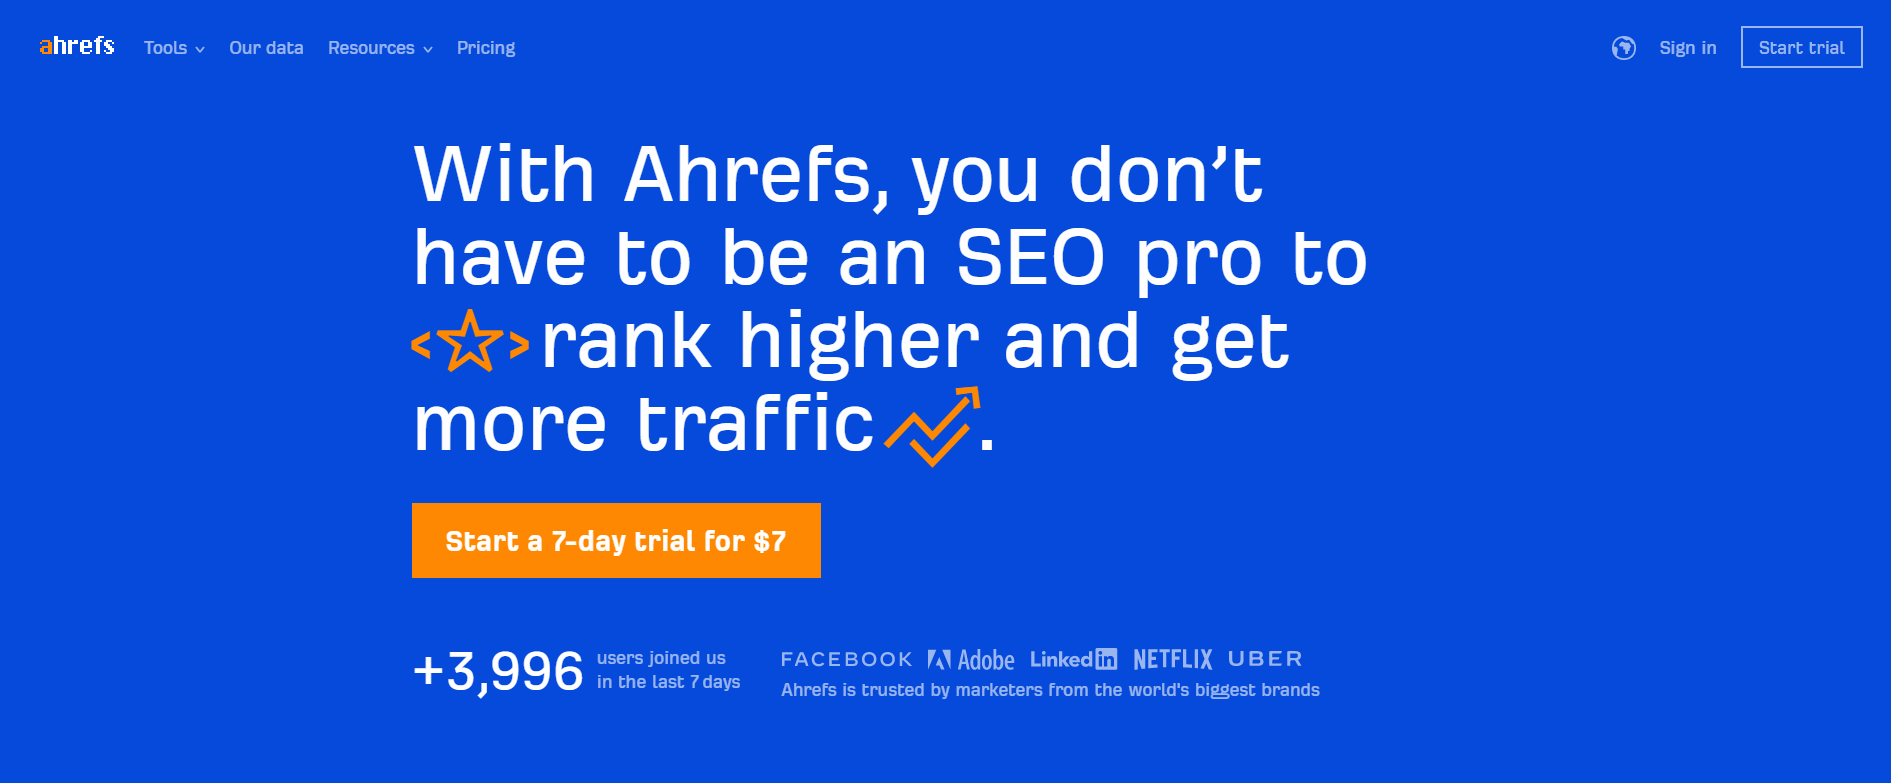 Ahrefs all in one SEO tools